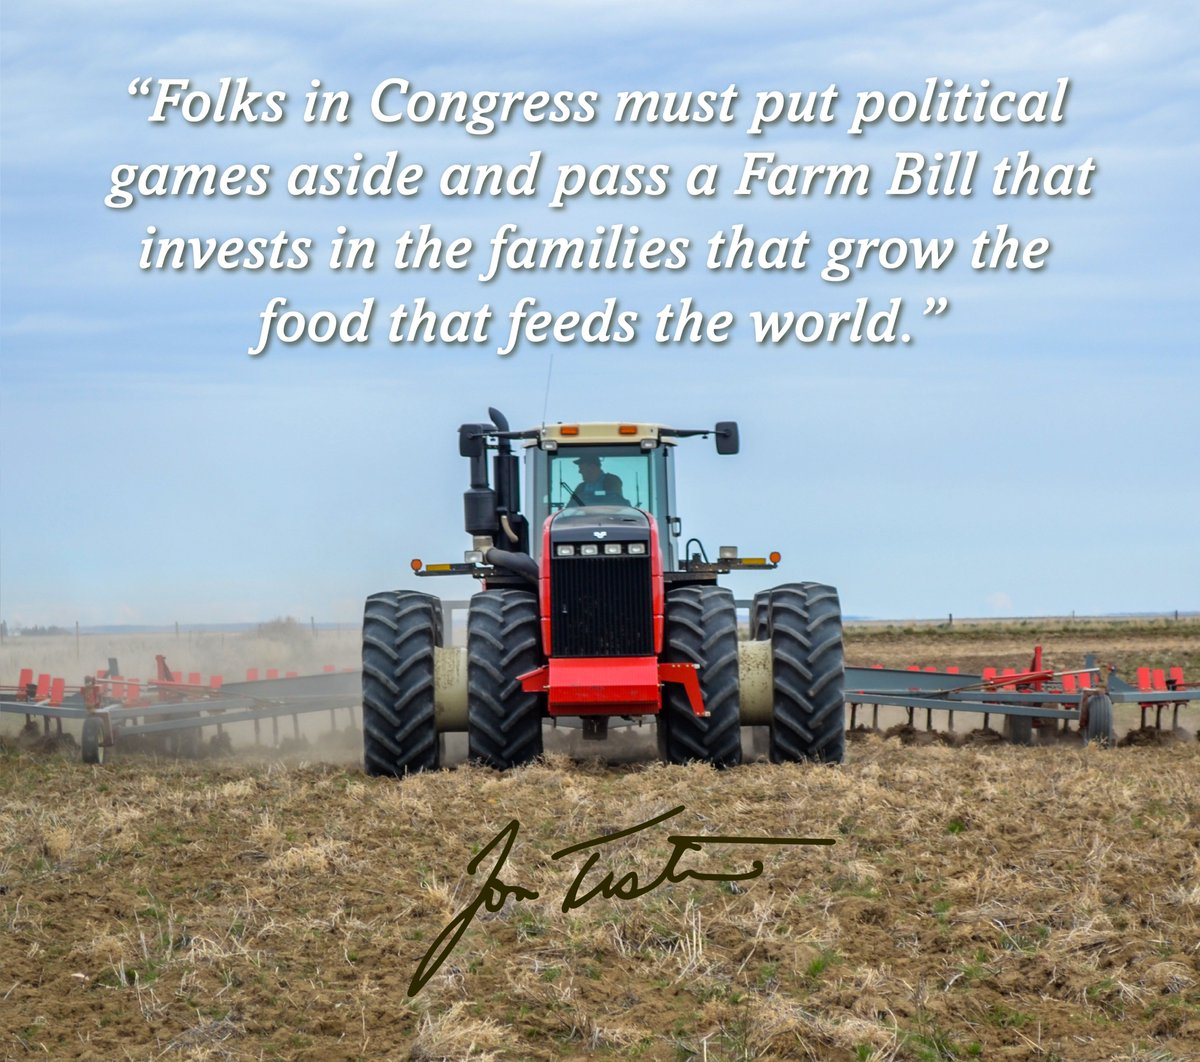 Today, @SenateAg passed the 2018 #FarmBill. As the Senate's only working farmer, I know how important this is to families who make a living off the land & I'll be working to ensure their feedback is reflected in this legislation as it's debated on the . @SenateFloor#mtpol